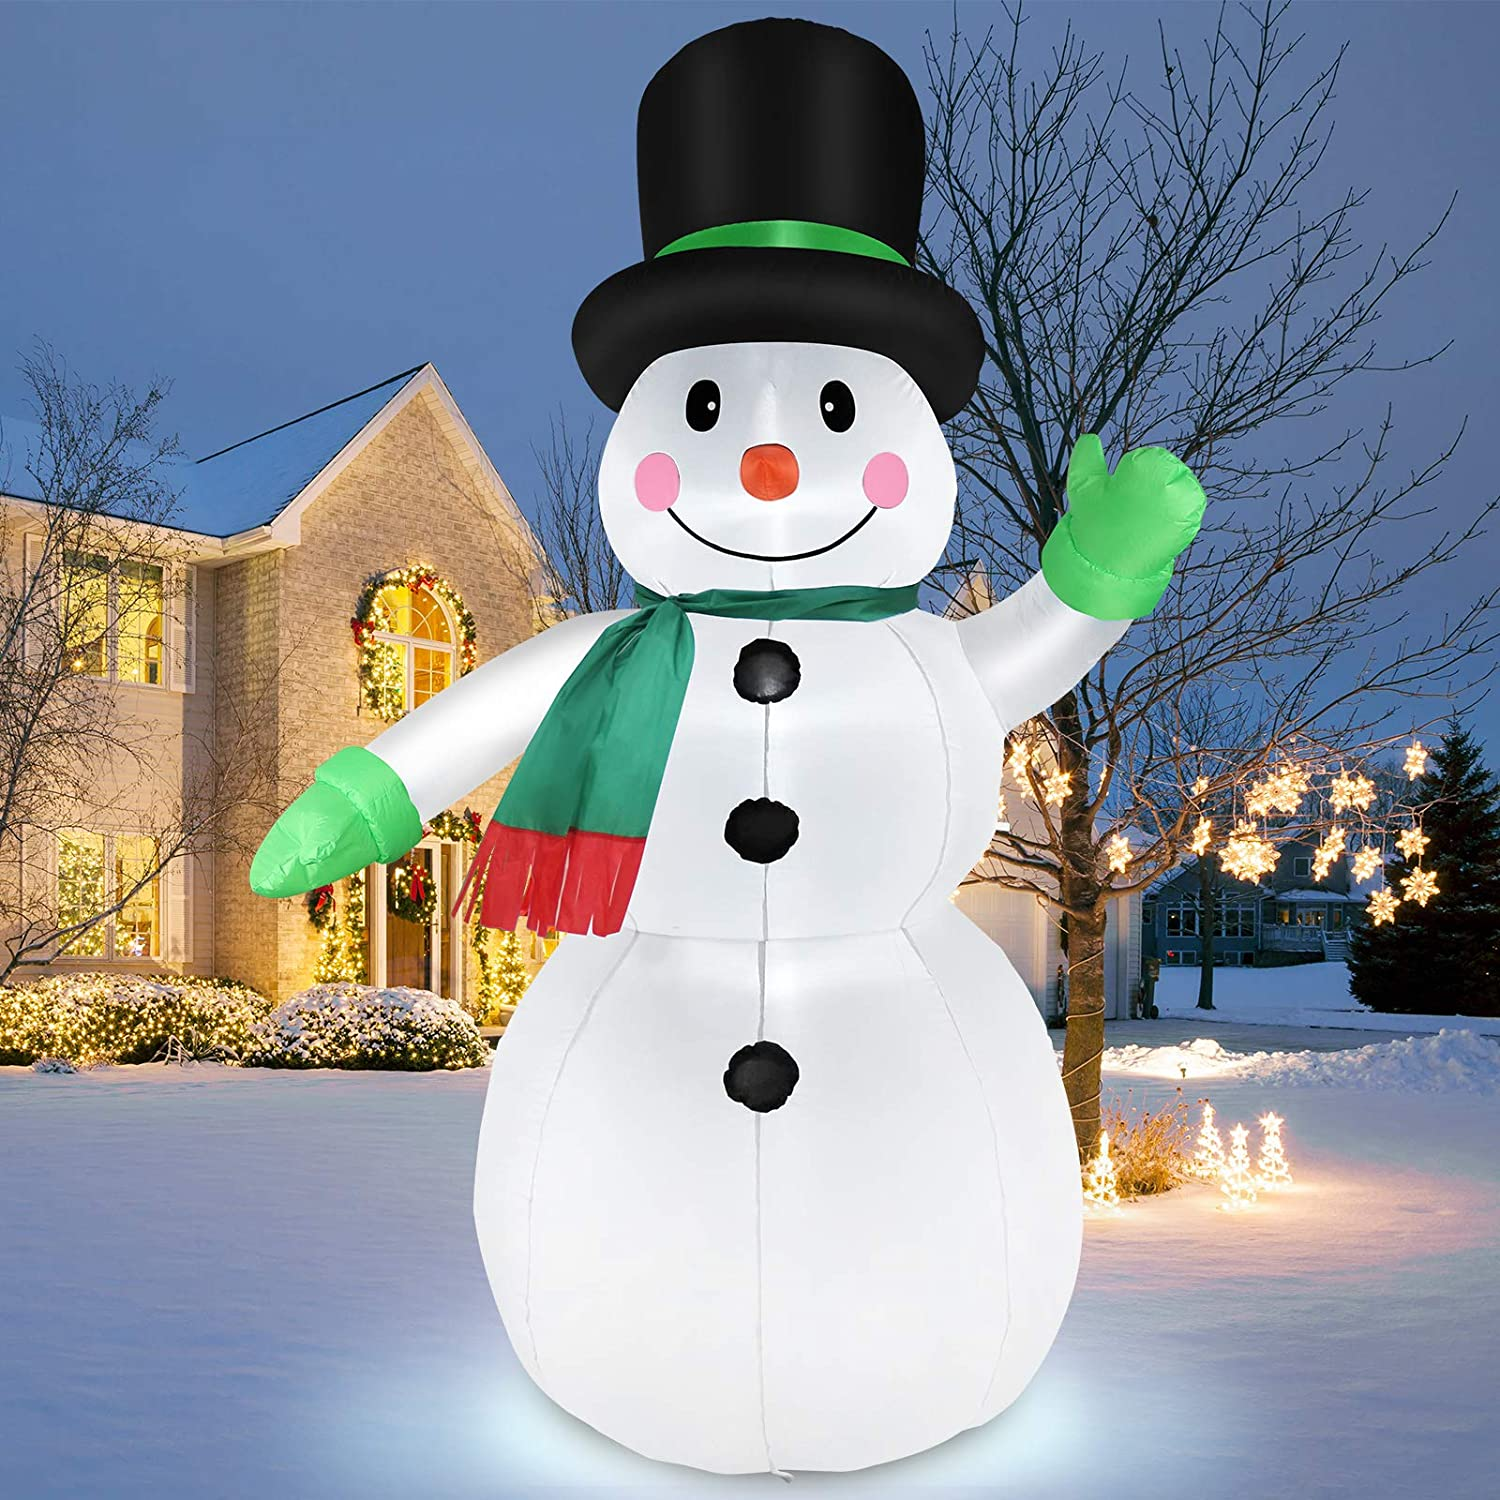 7 Feet Inflatable Snowman Outdoor Holiday Yard Decorations, Blow Up Snow Man with LED Lights, Christmas Decorations Inflatables, Winter Decor for Garden Patio Lawn, IP44 Weather Proof, Xmas Kids Gifts